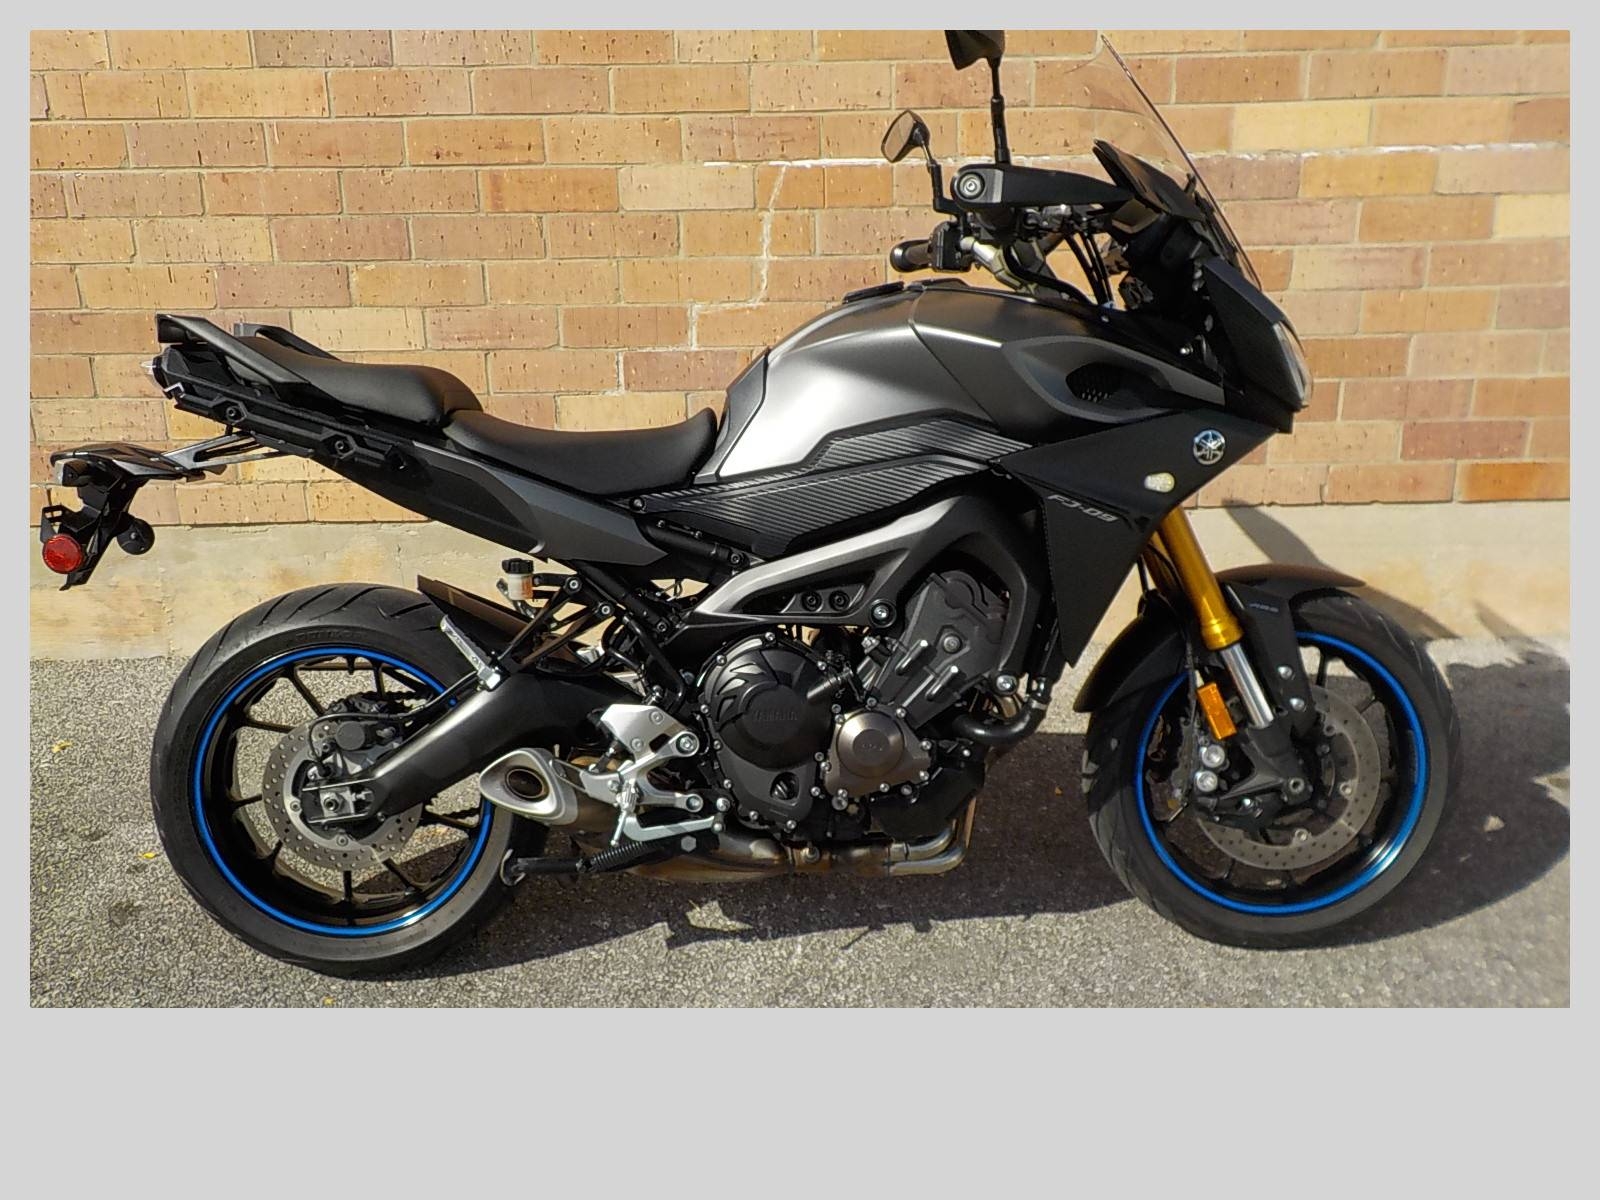 2015 Yamaha FJ-09 in San Antonio, Texas - Photo 1